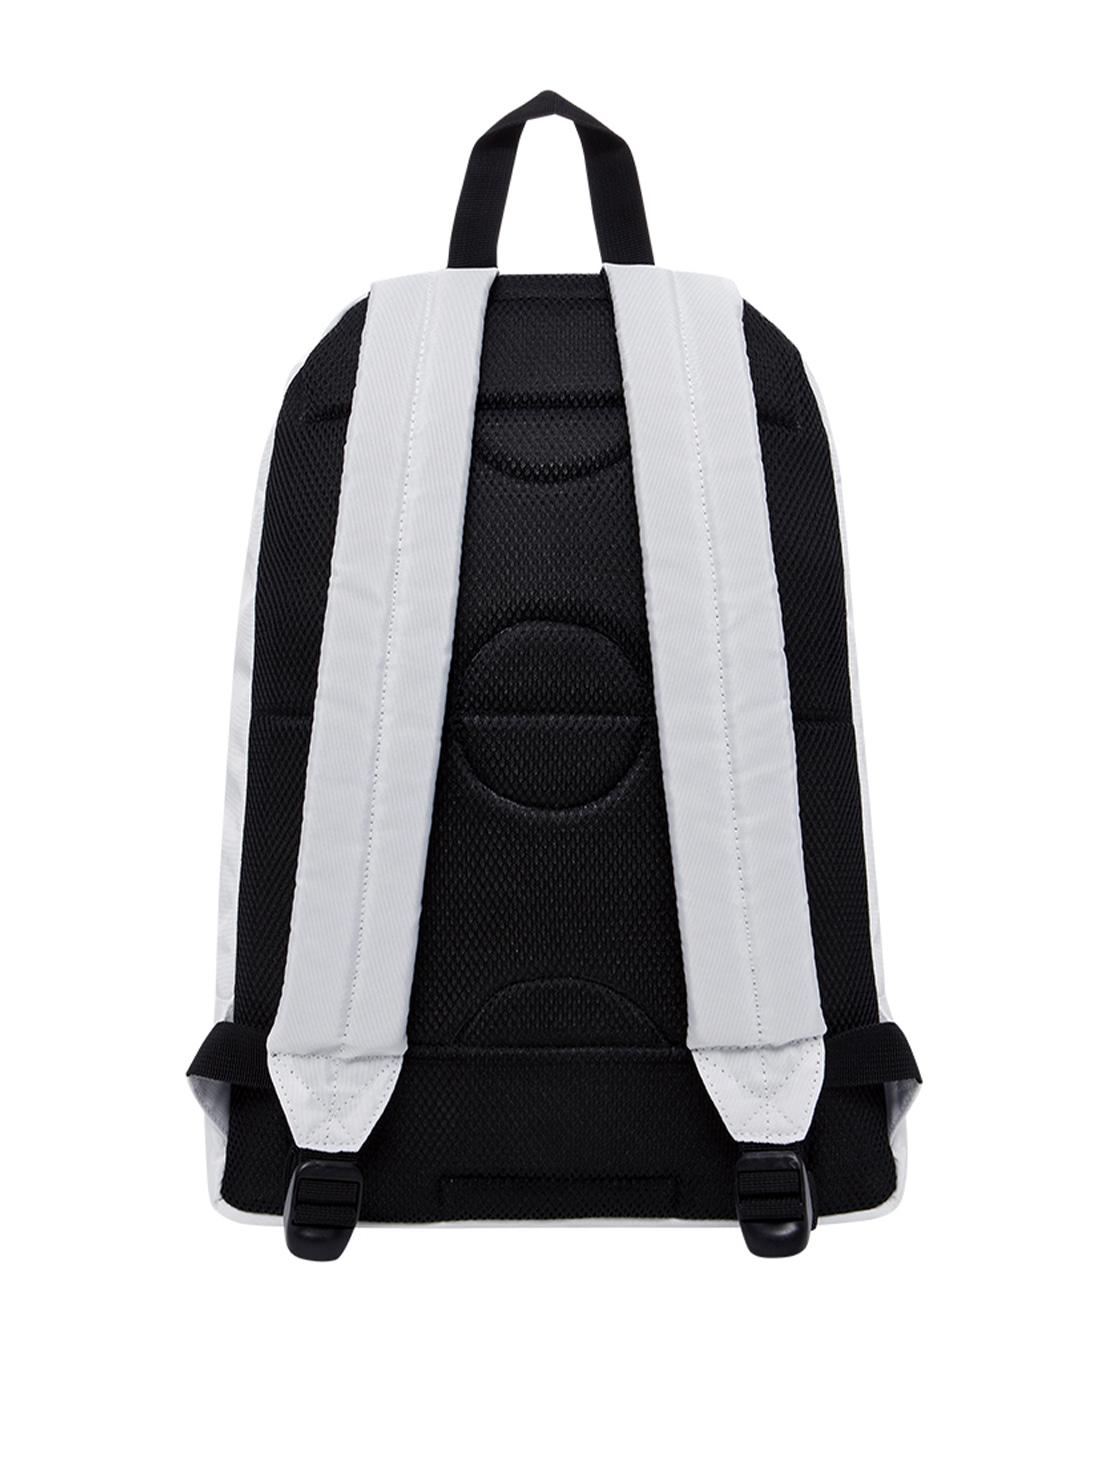 GOAL TAPE BACKPACK - WHITE